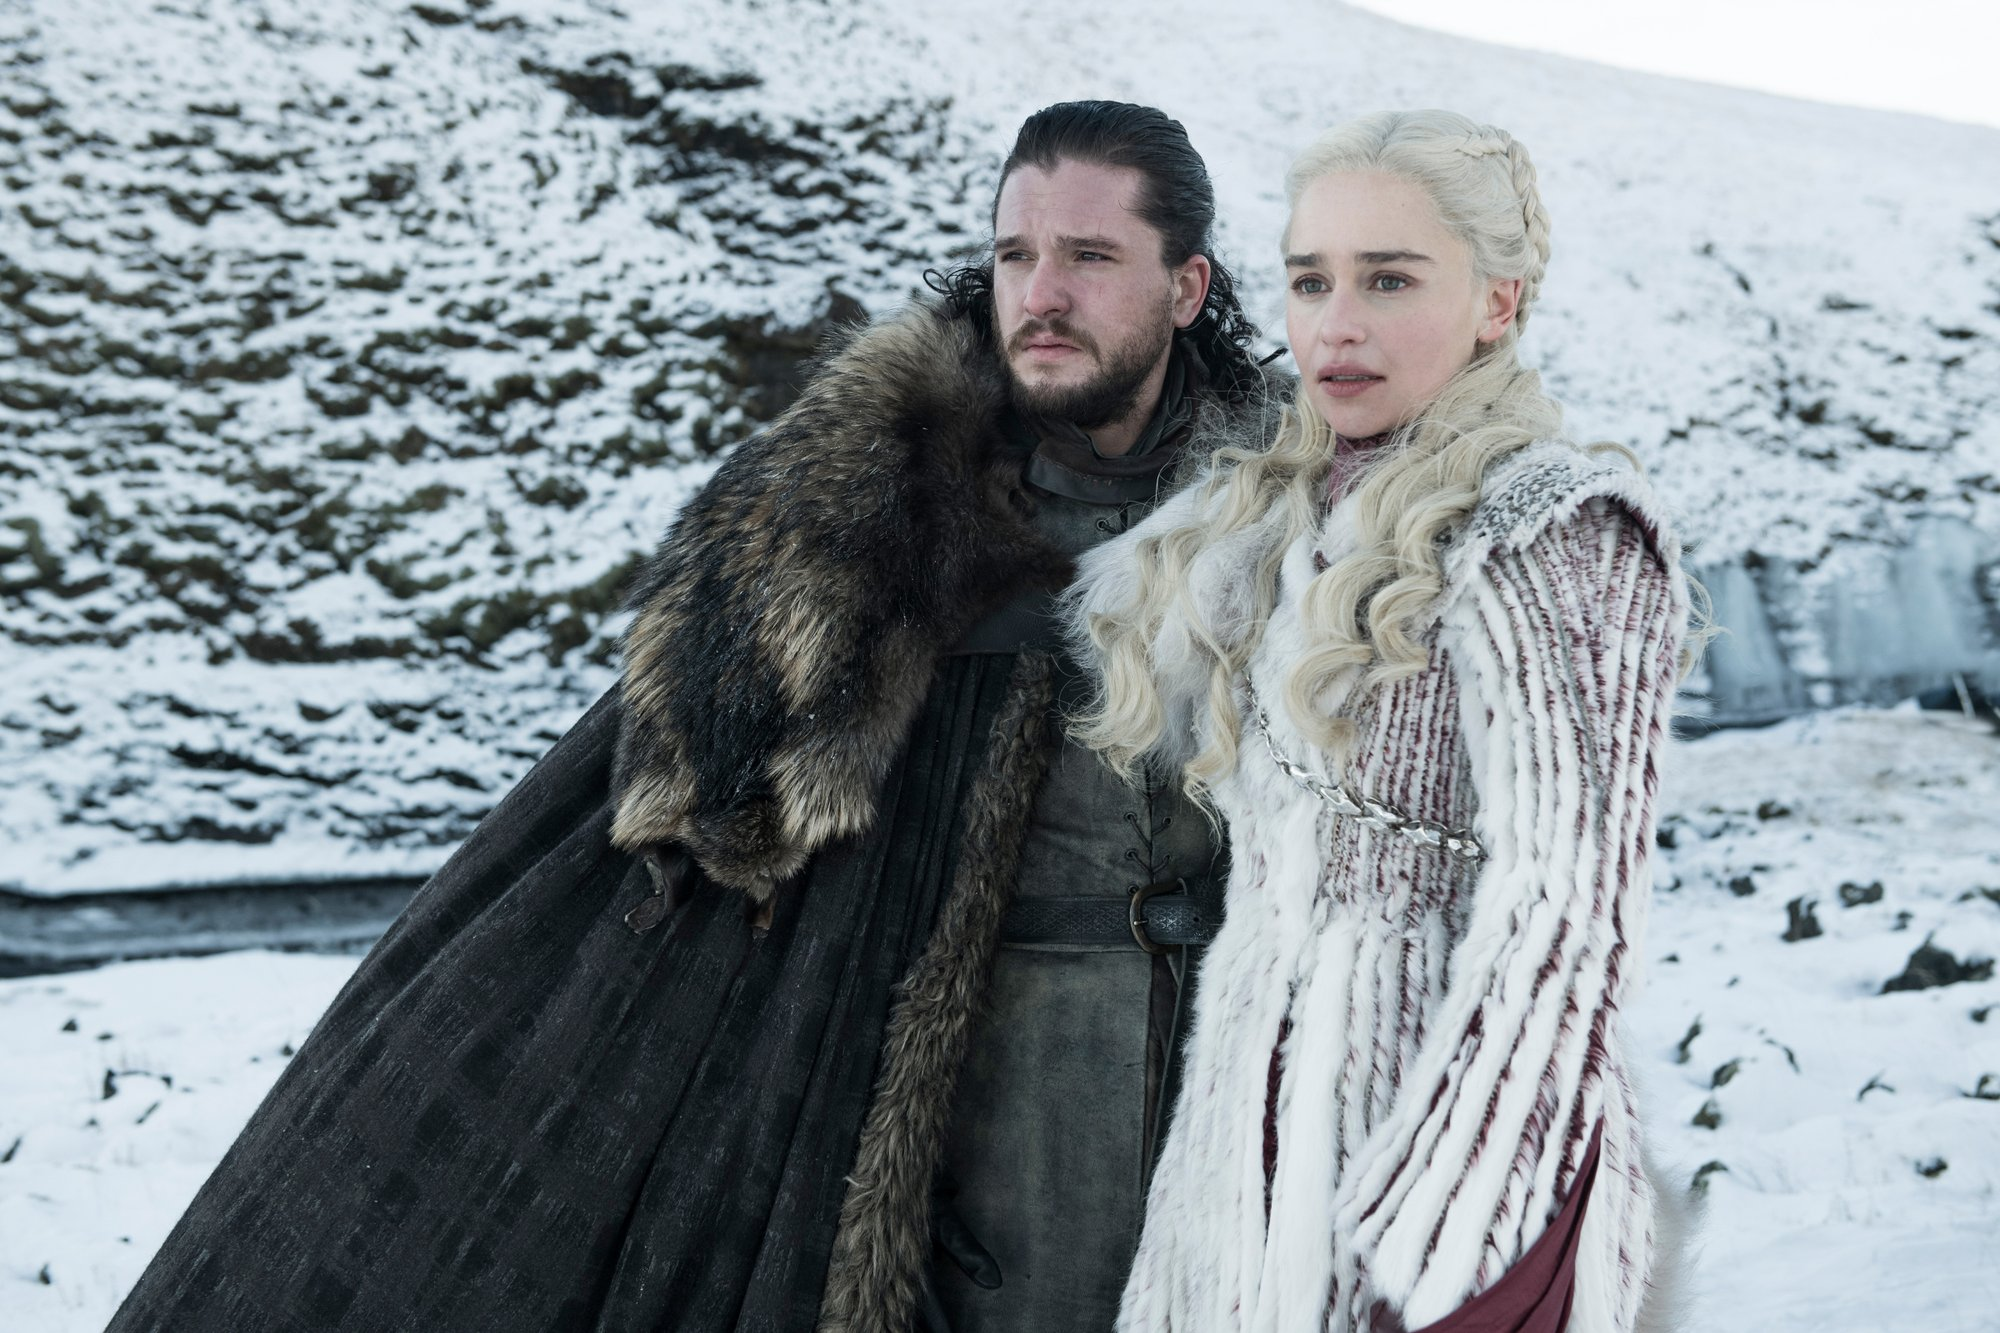 Game of Thrones HBO via AP